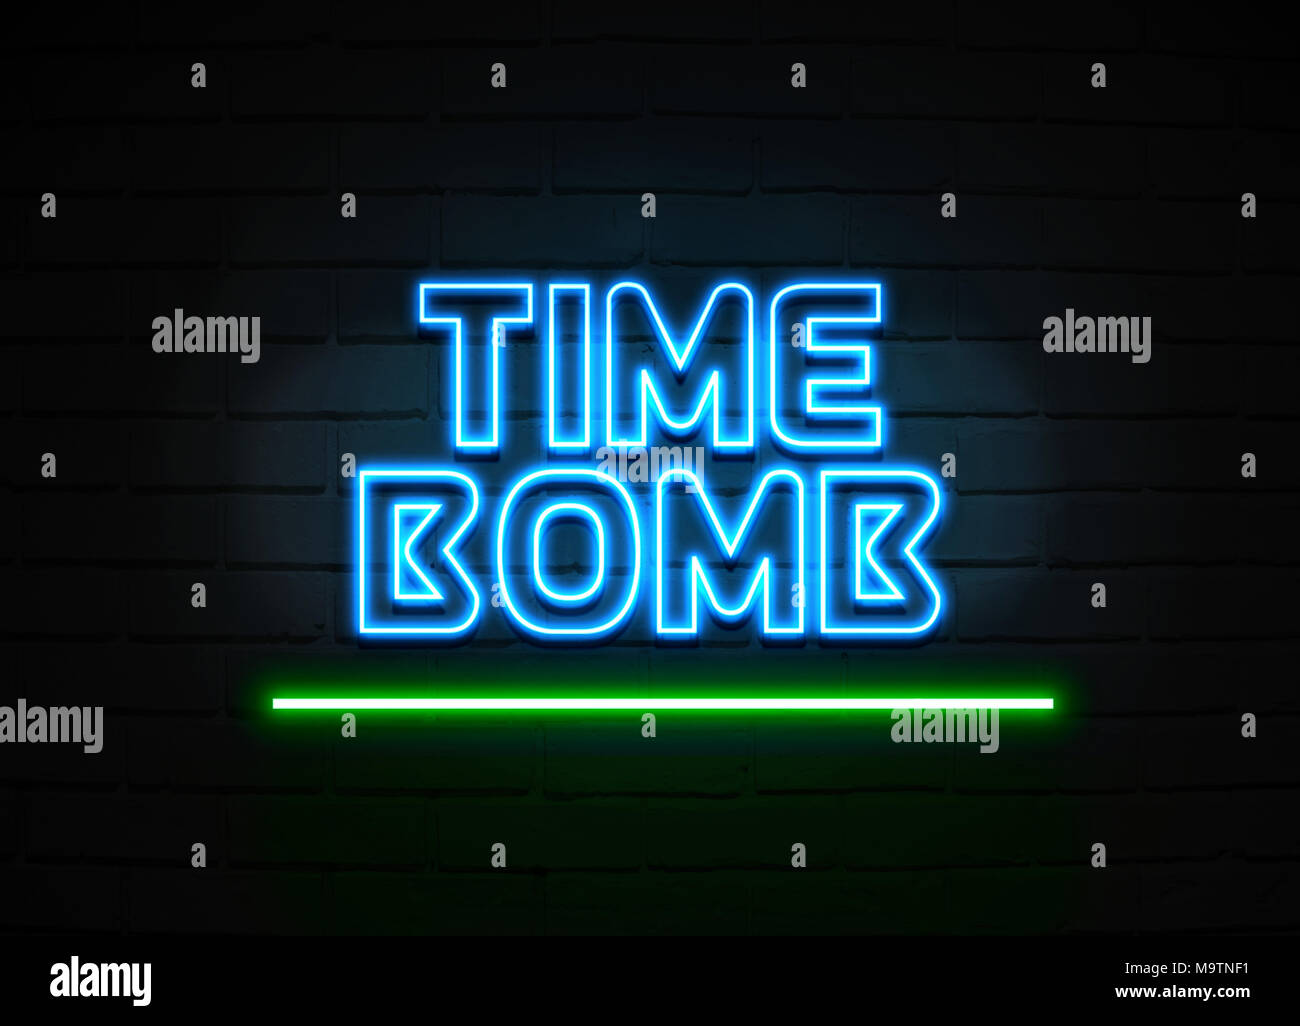 Time Bomb neon sign - Glowing Neon Sign on brickwall wall - 3D rendered royalty free stock illustration. - Stock Image